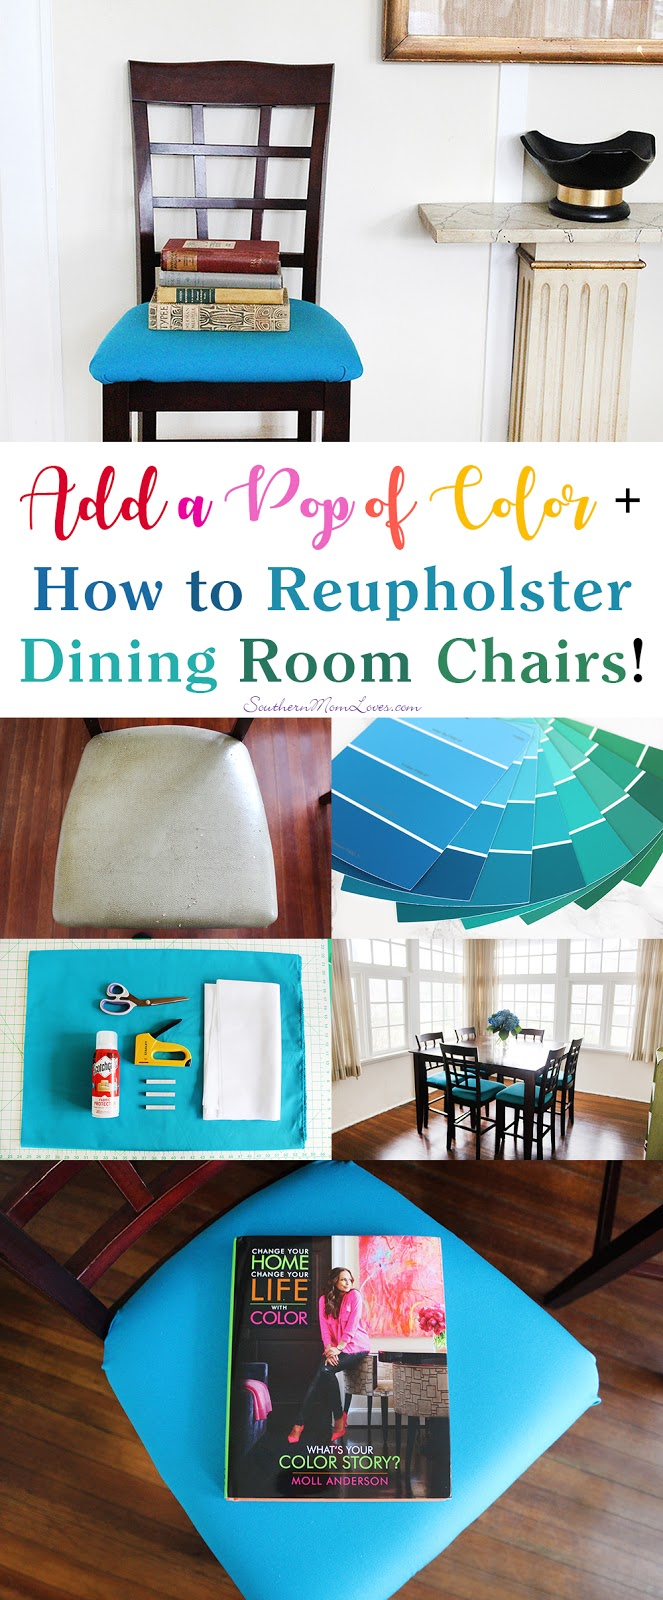 How To Reupholster Dining Room Chairs Youtube